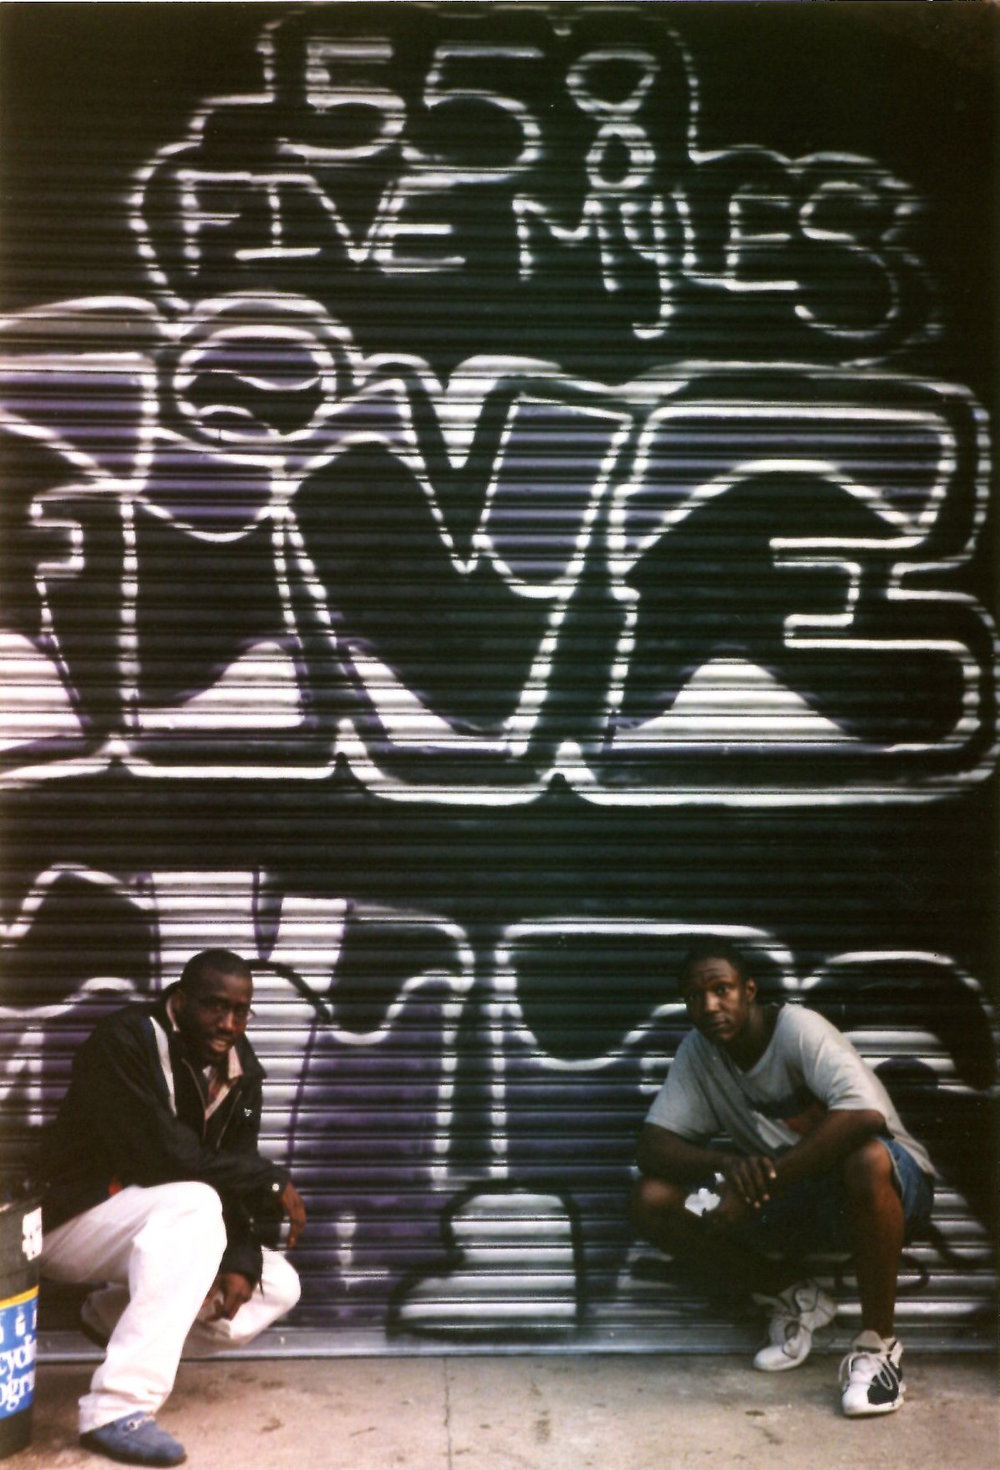 The original FiveMyles graffiti, executed by Rusley (on the right) in 1999